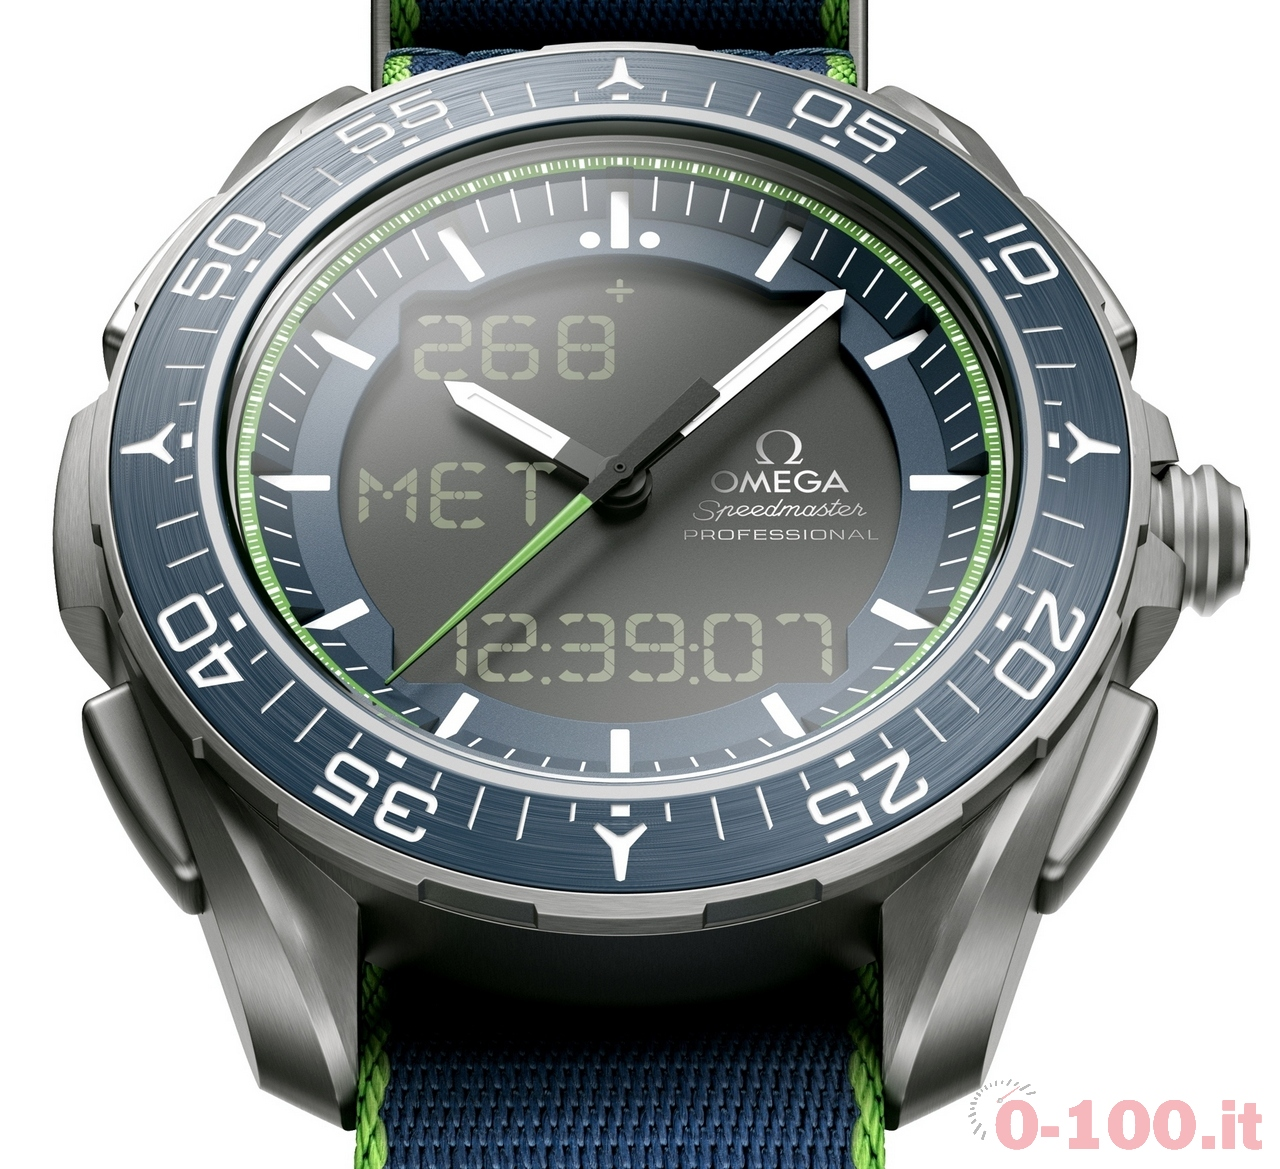 07273d1a963 Omega Speedmaster Skywalker X-33 Solar Impulse Limited Edition Ref ...